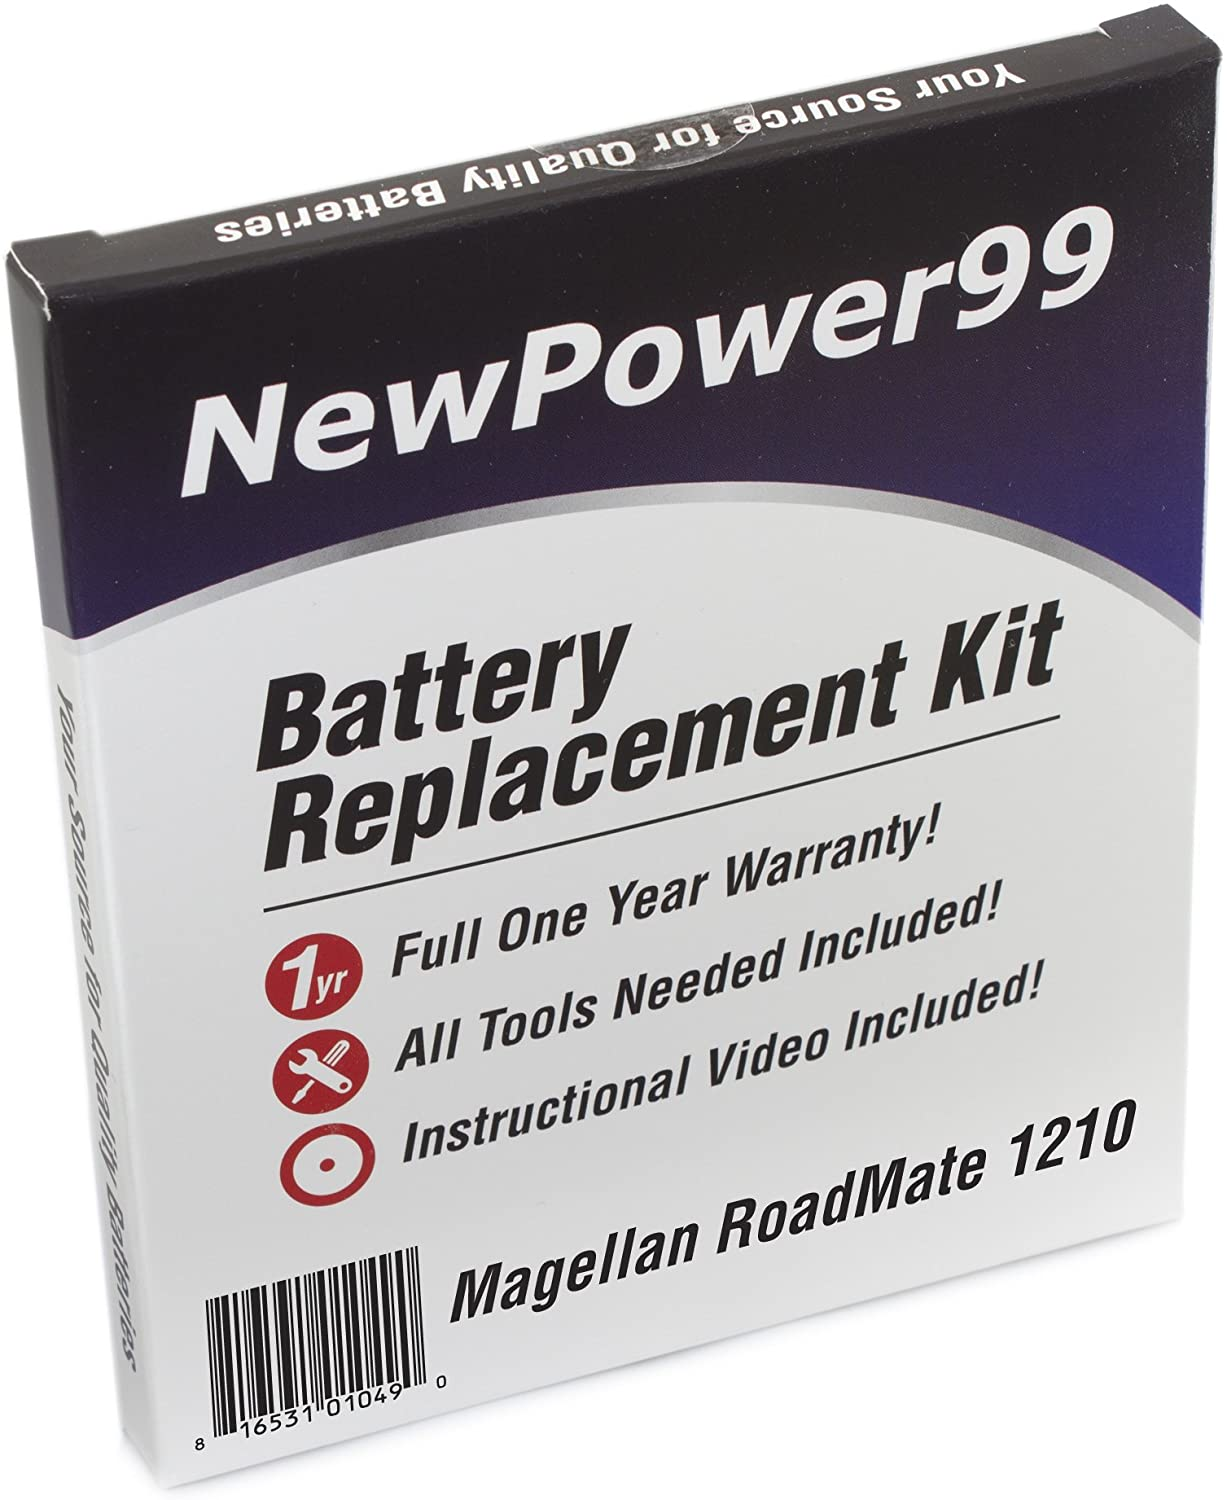 NewPower99 Battery Replacement Kit with Battery, Video Instructions and Tools for Magellan RoadMate 1210